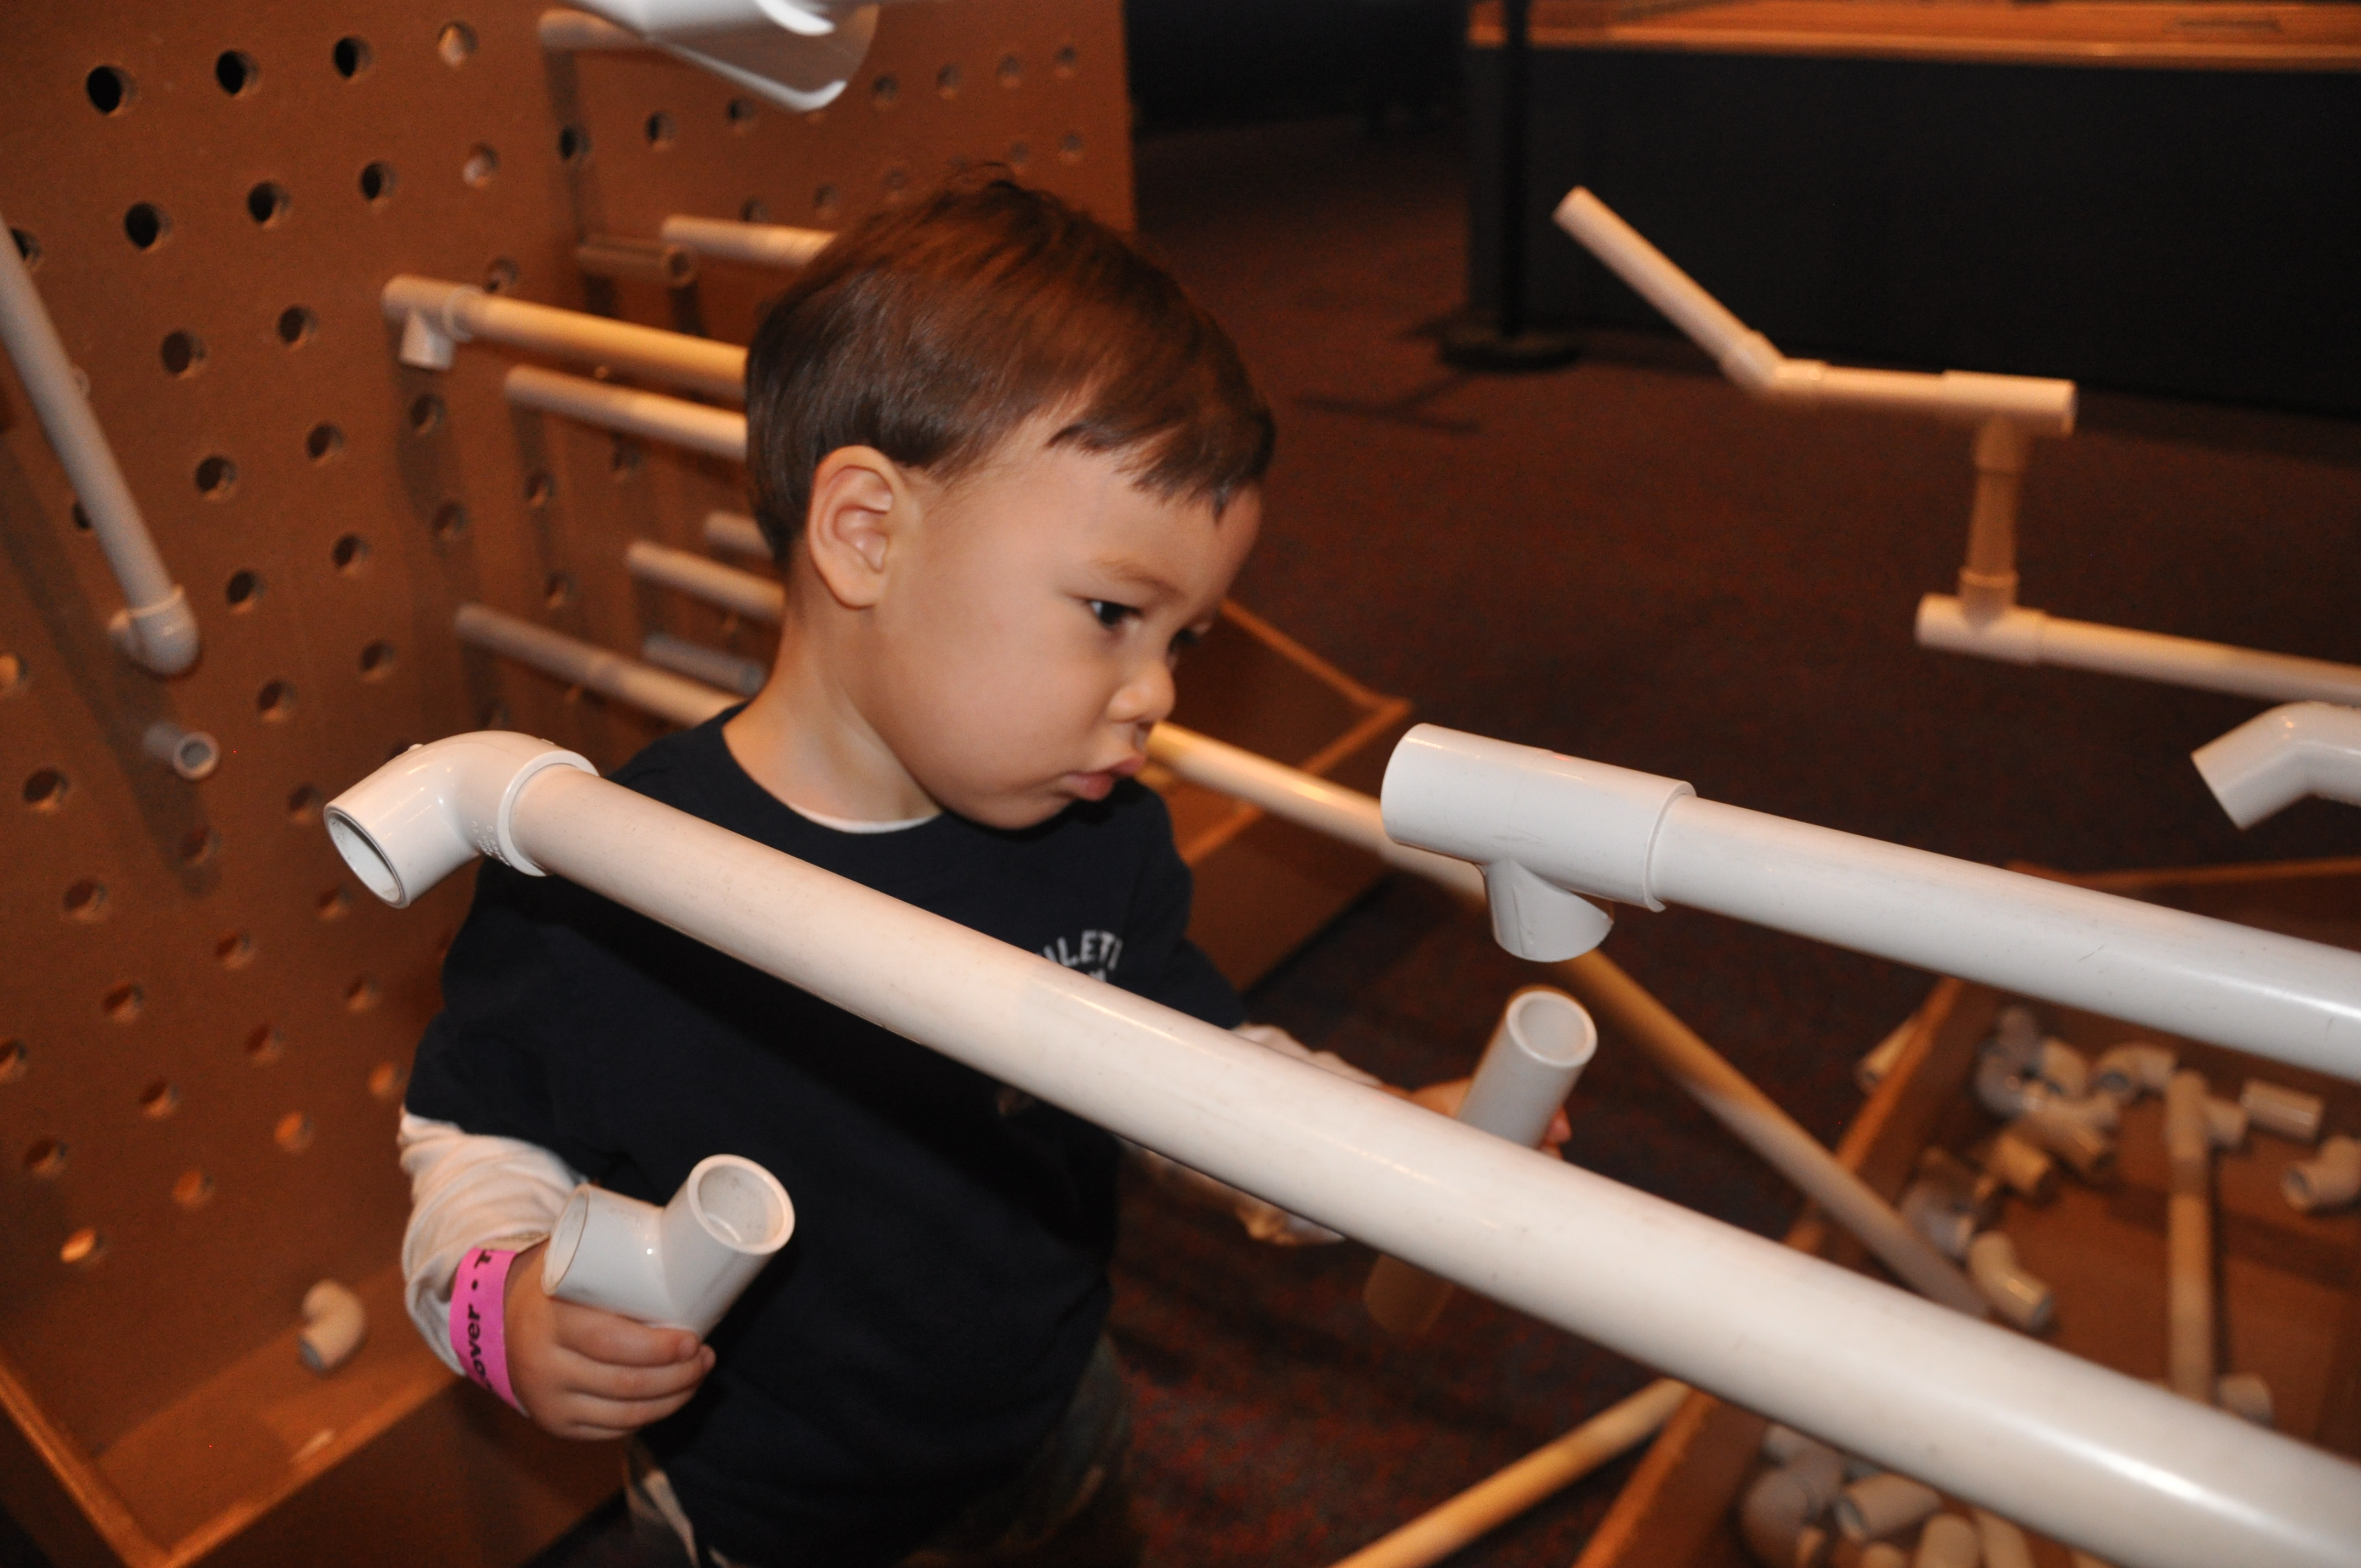 Homemade Toys: PVC Pipe Building